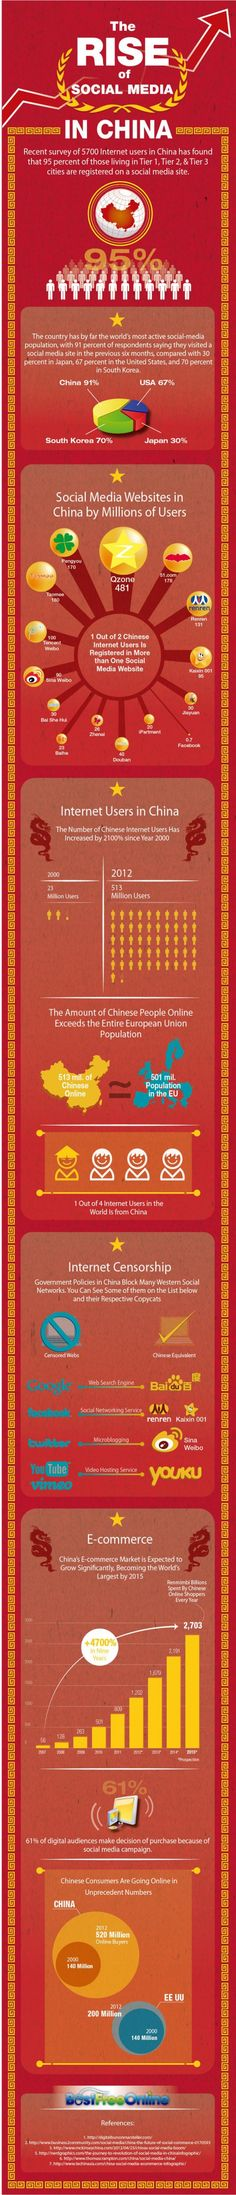 The Rise of Social Media in China. #Infographic